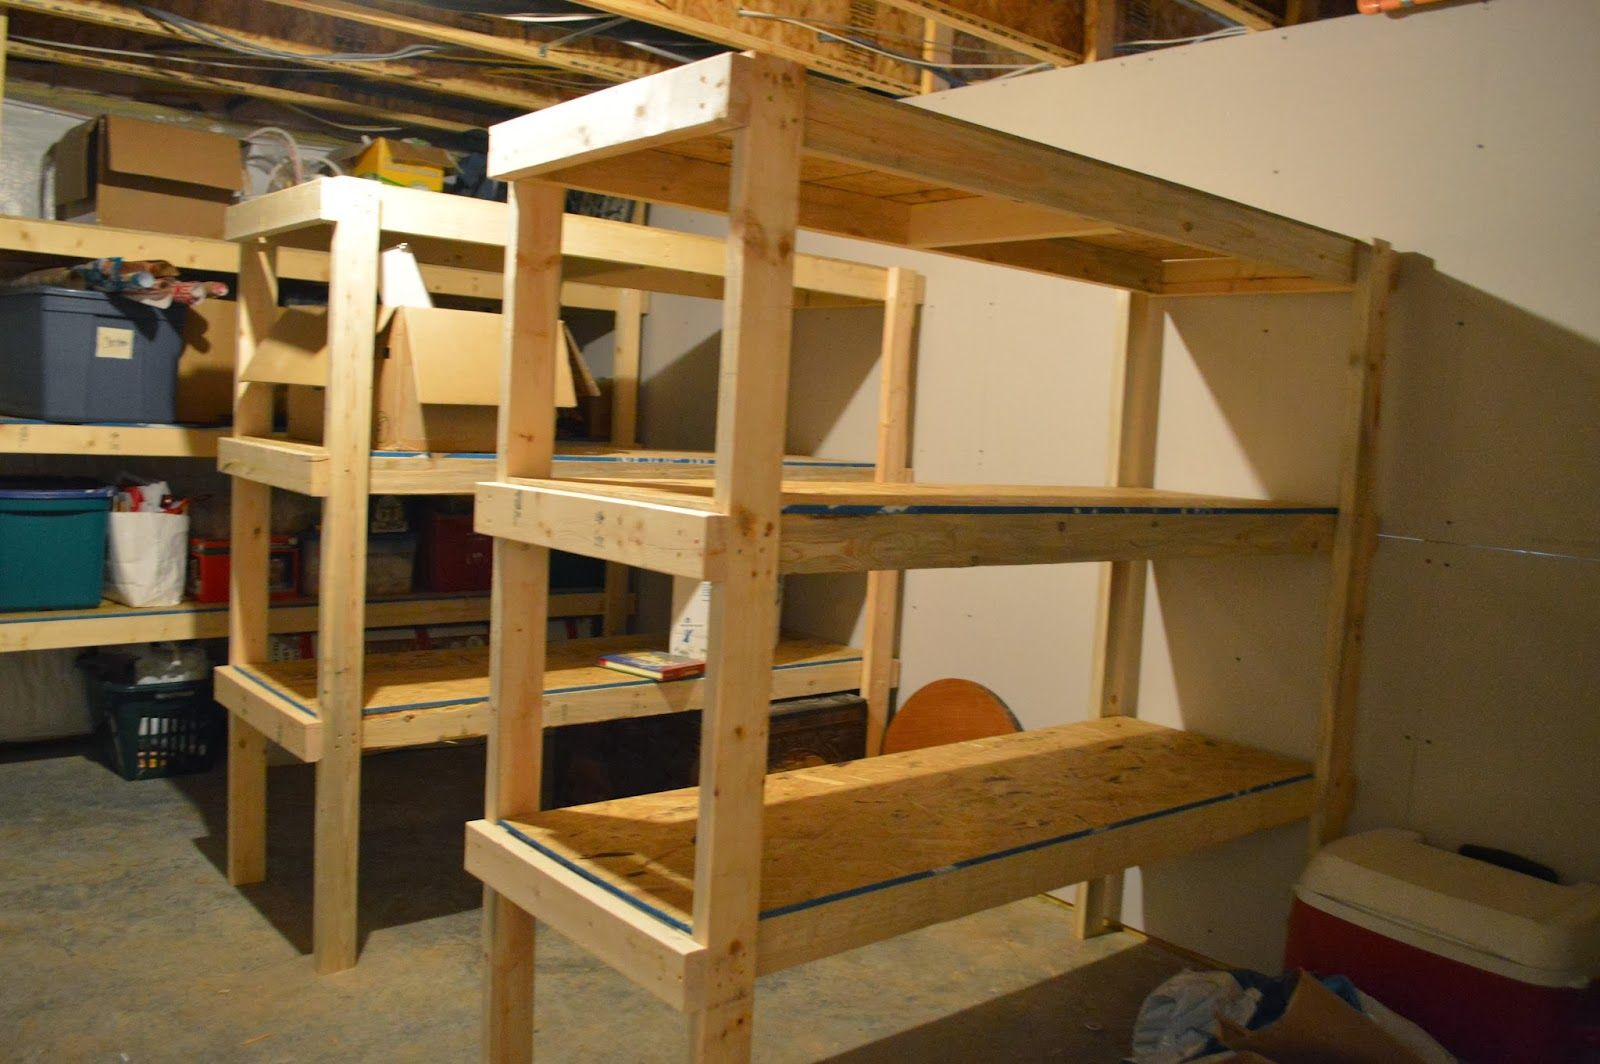 Unfinished basement storage ideas - Right Up My Alley Our Unfinished Basement Tour And How We Built Storage Shelves